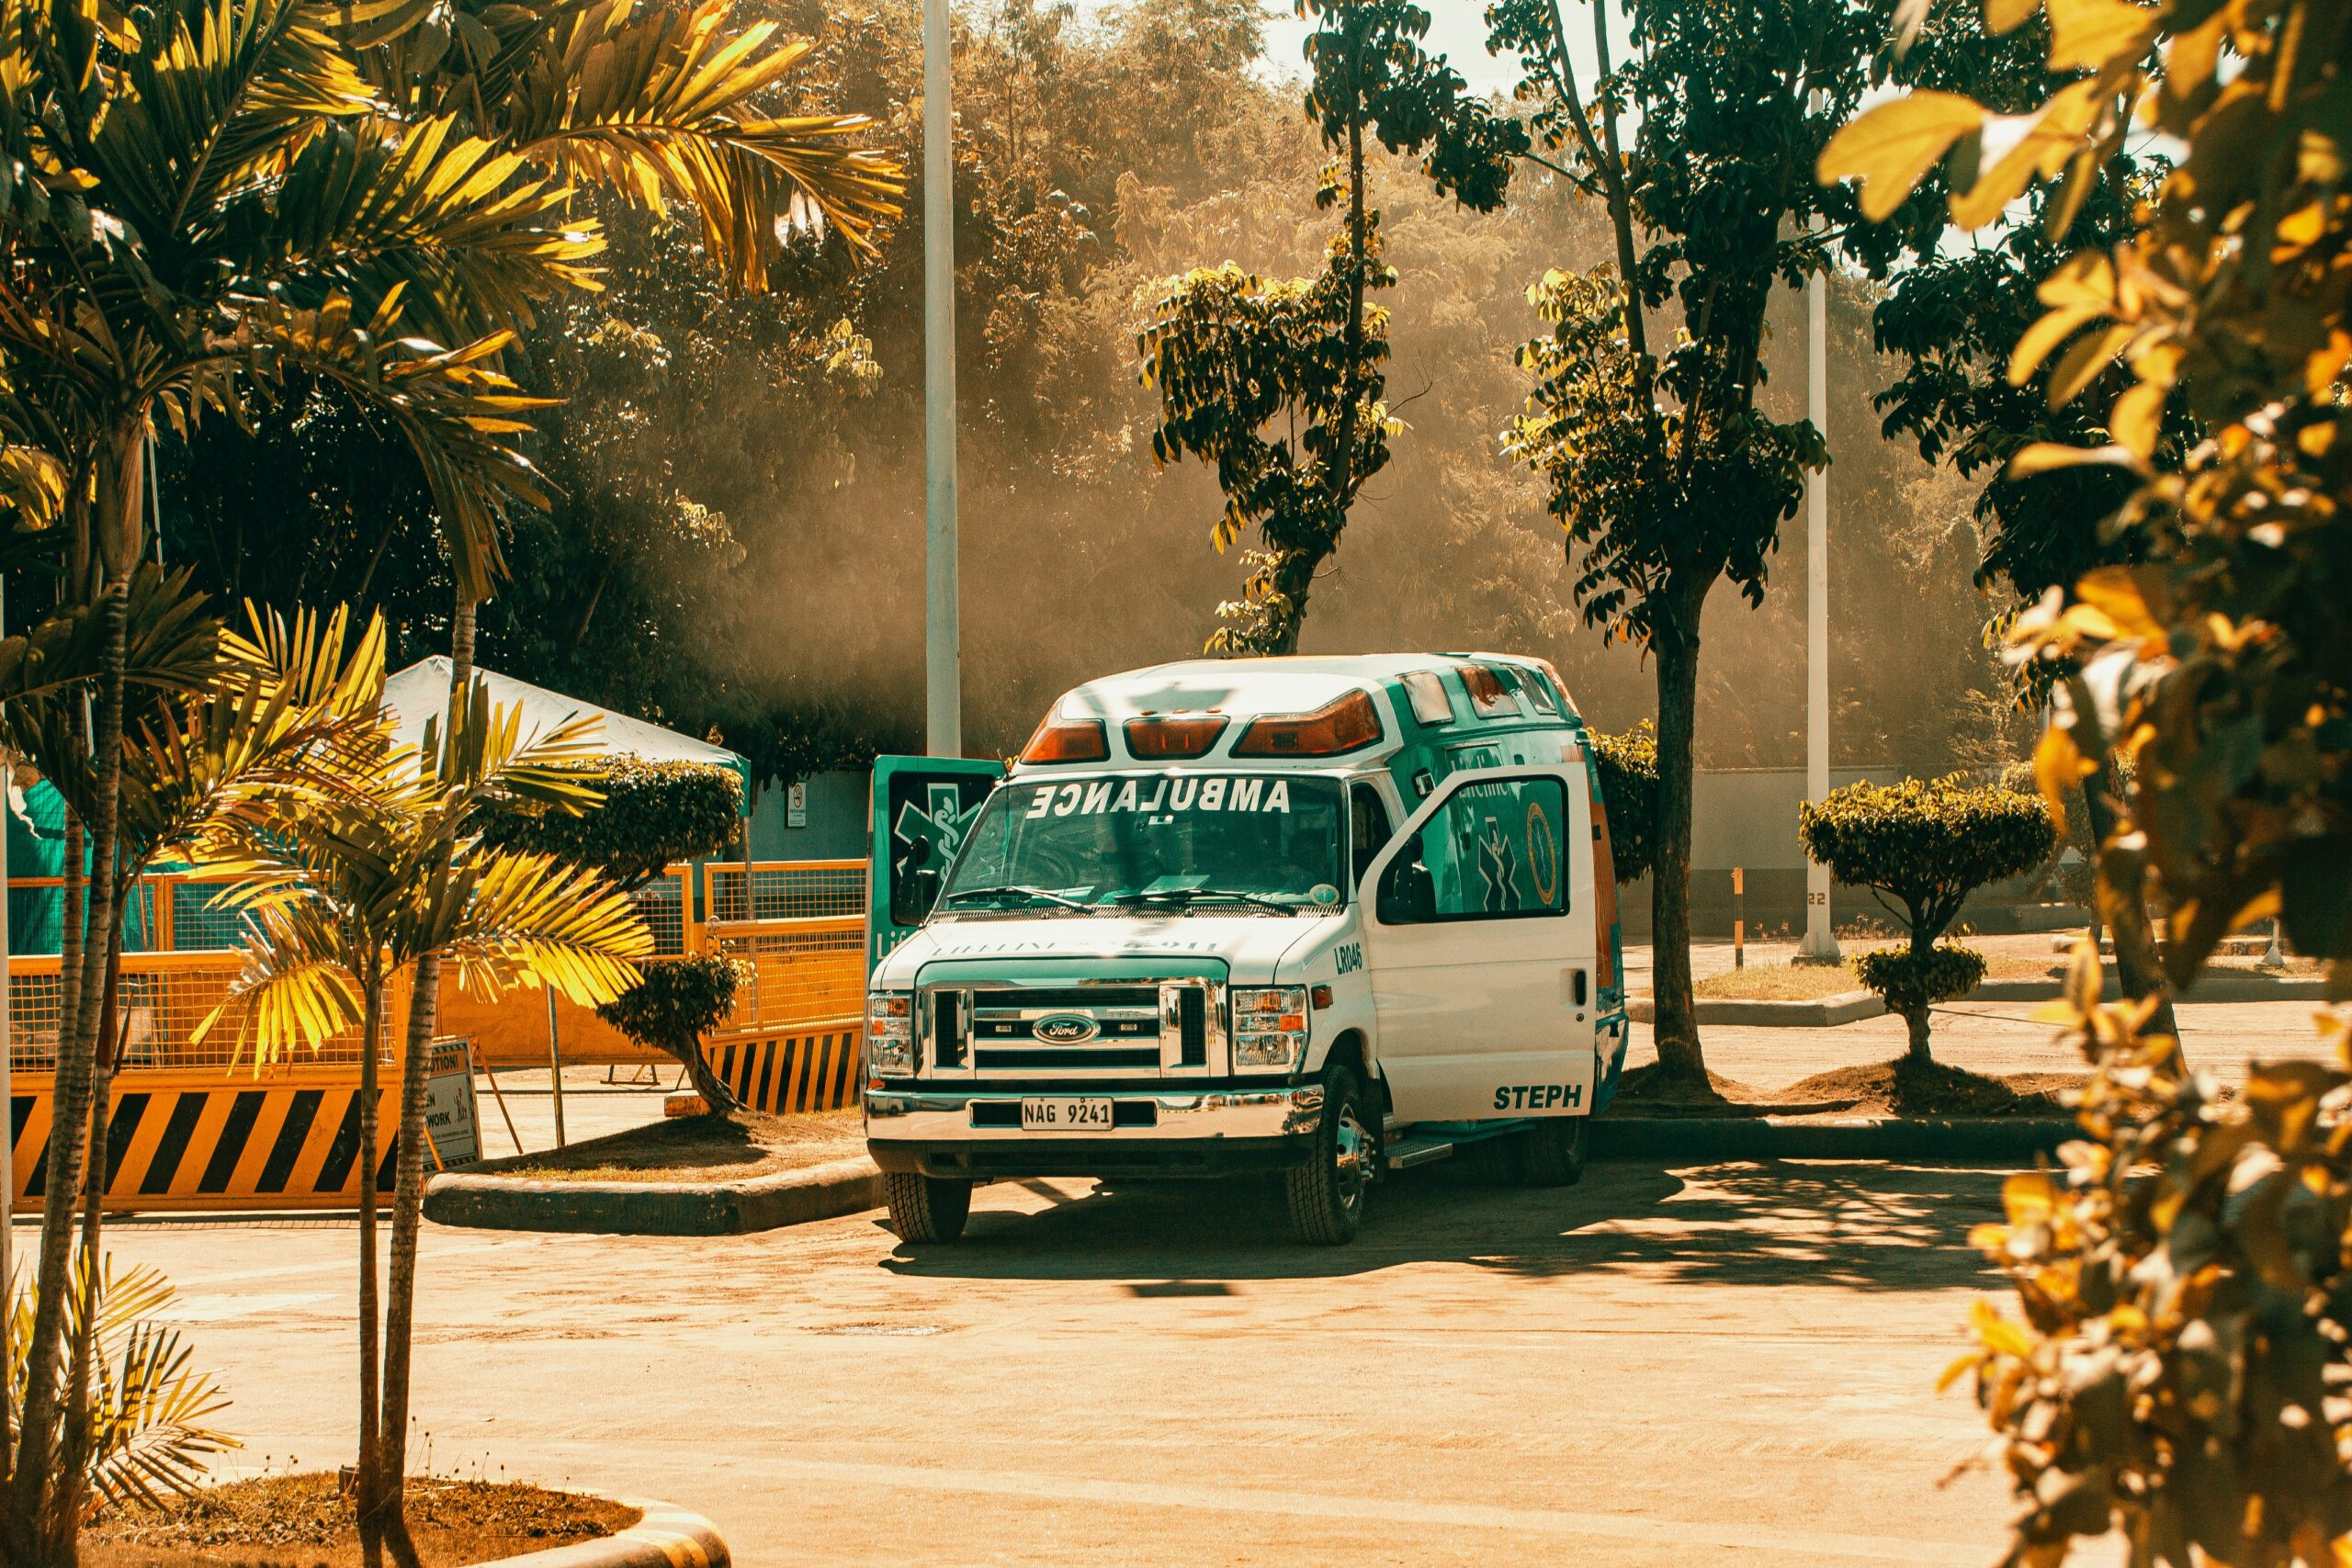 photo-of-ambulance-parked-in-parking-lot-3584101